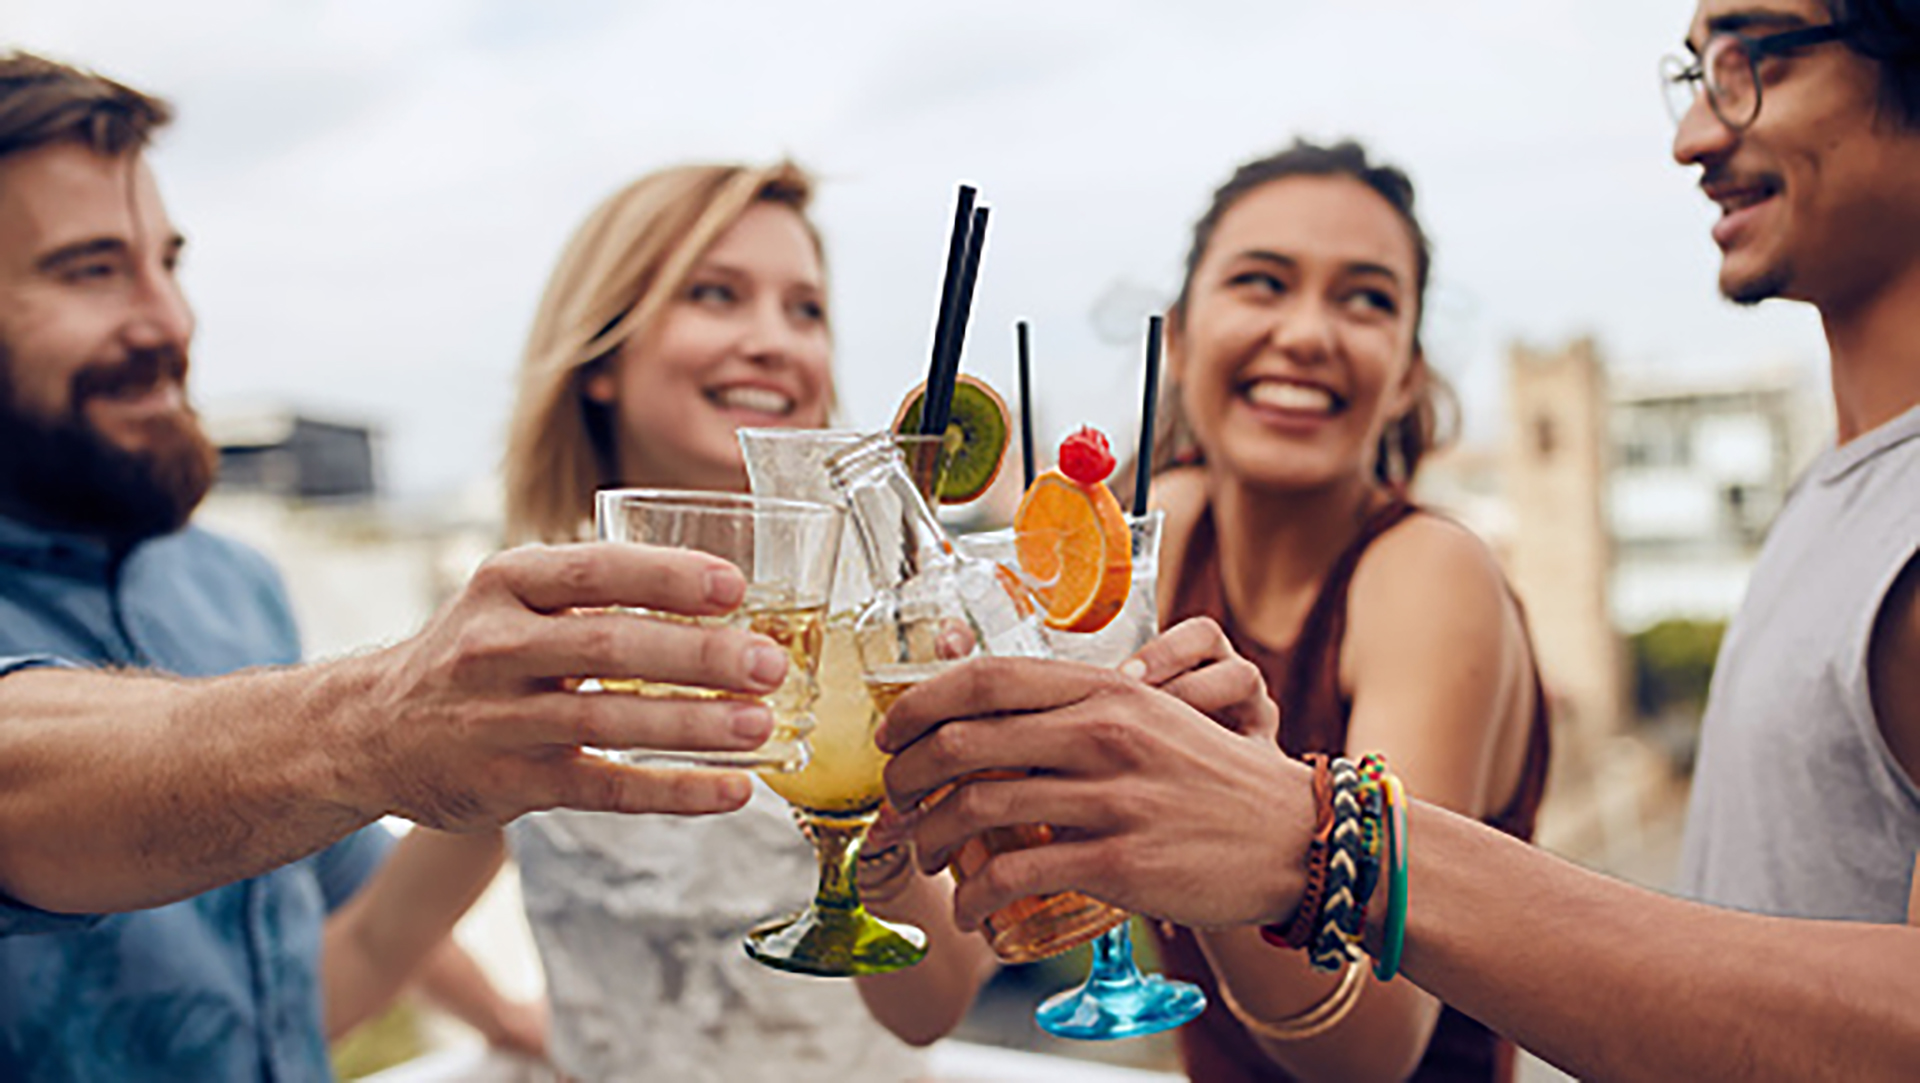 Los after beach son algunas de las alternativas más divertidas para disfrutar de deliciosos drinks (Getty Images)